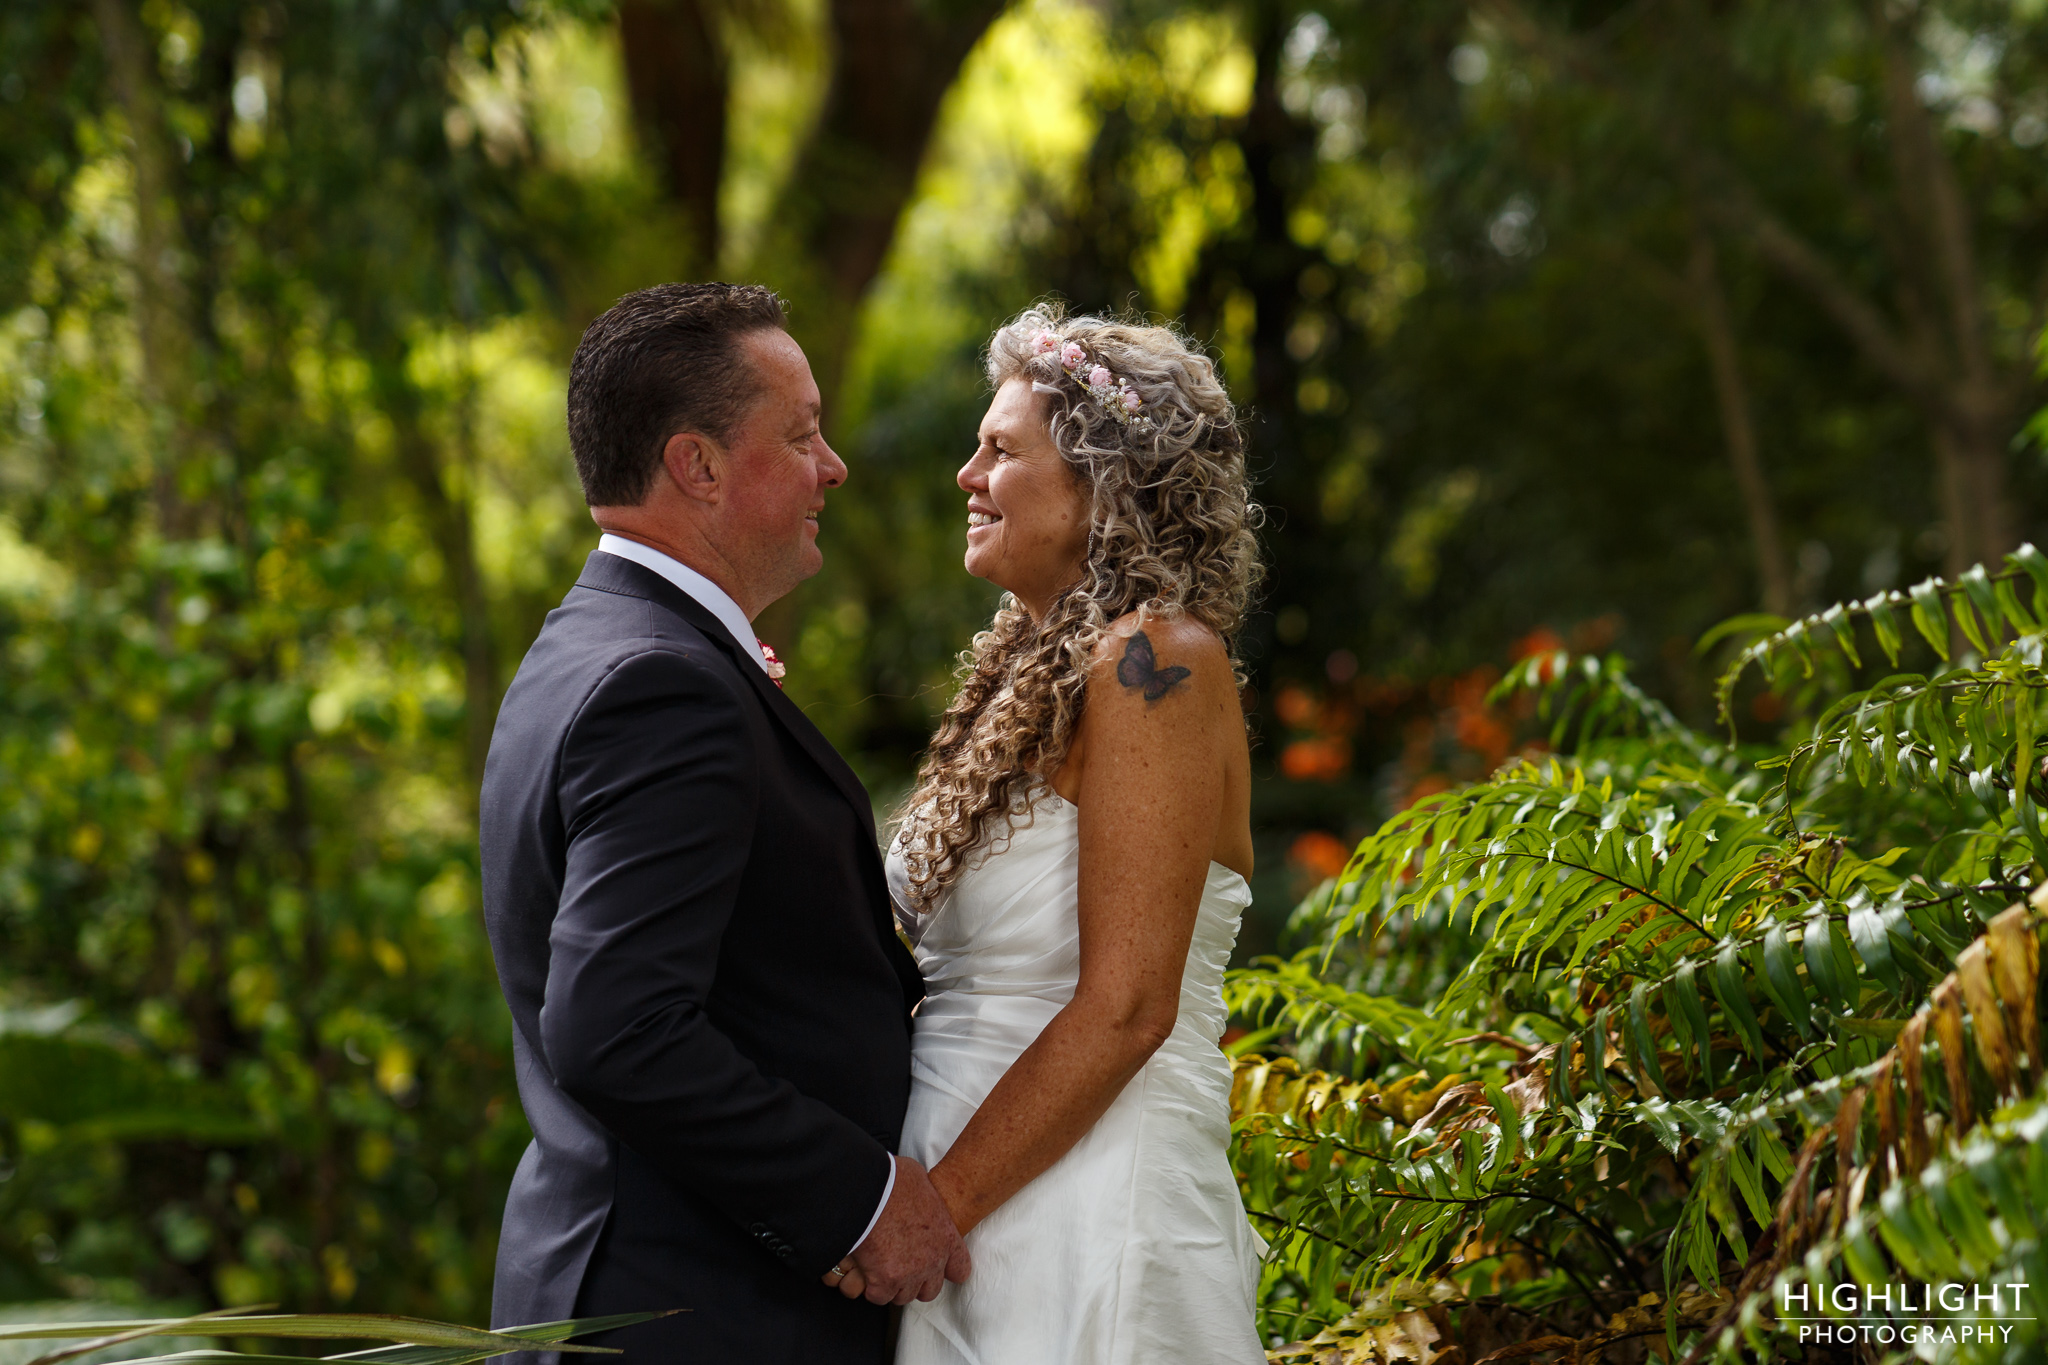 highlight_wedding_photography_palmerston_north_manawatu_chalet_wedding-70.jpg